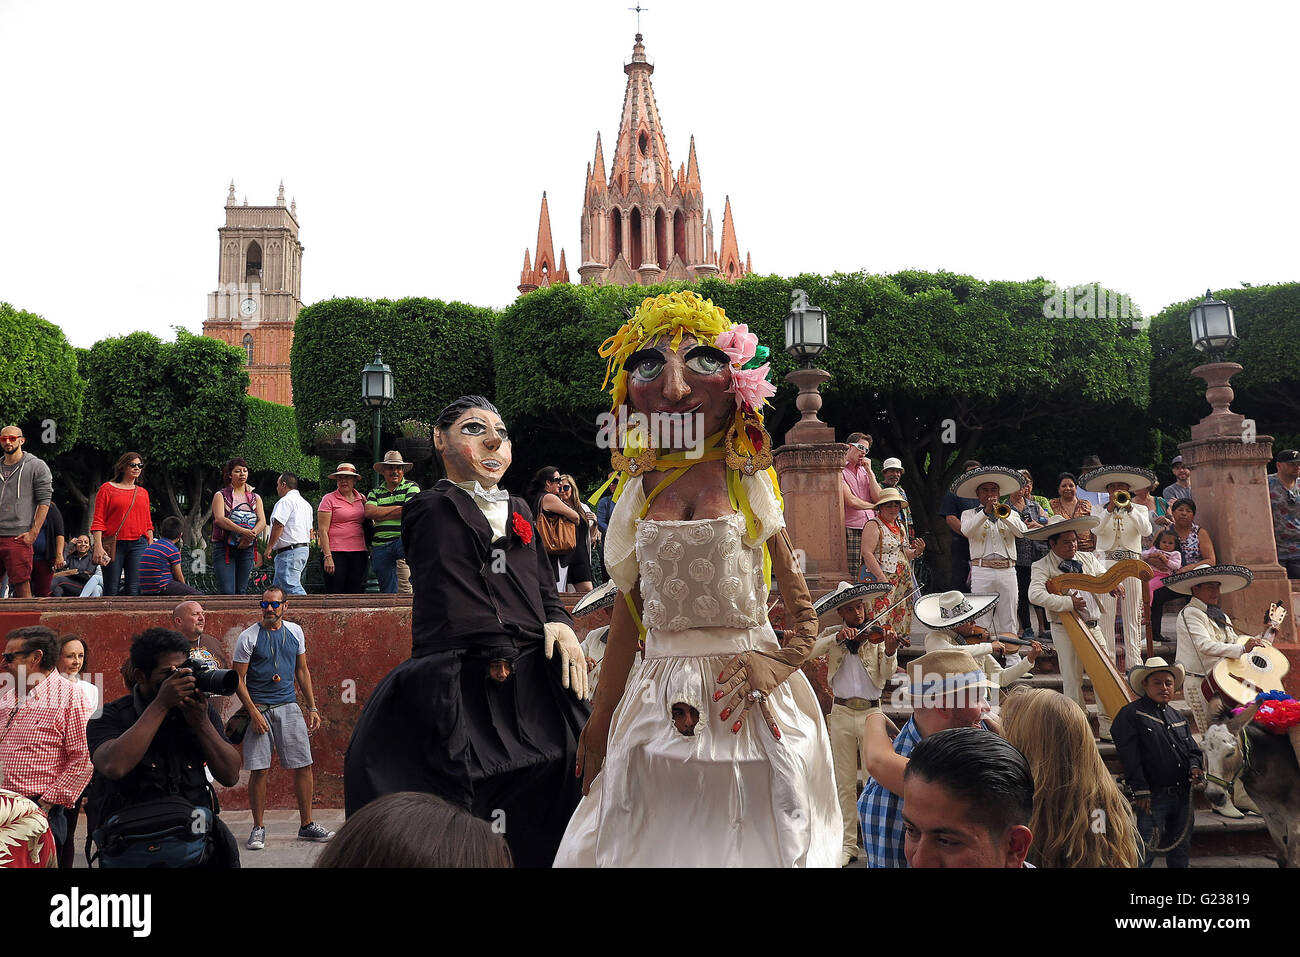 San Miguel De Allende, Mexico. 18th Apr, 2016. A wedding parade marches through the streets in San Miguel de Allende. - Stock Image